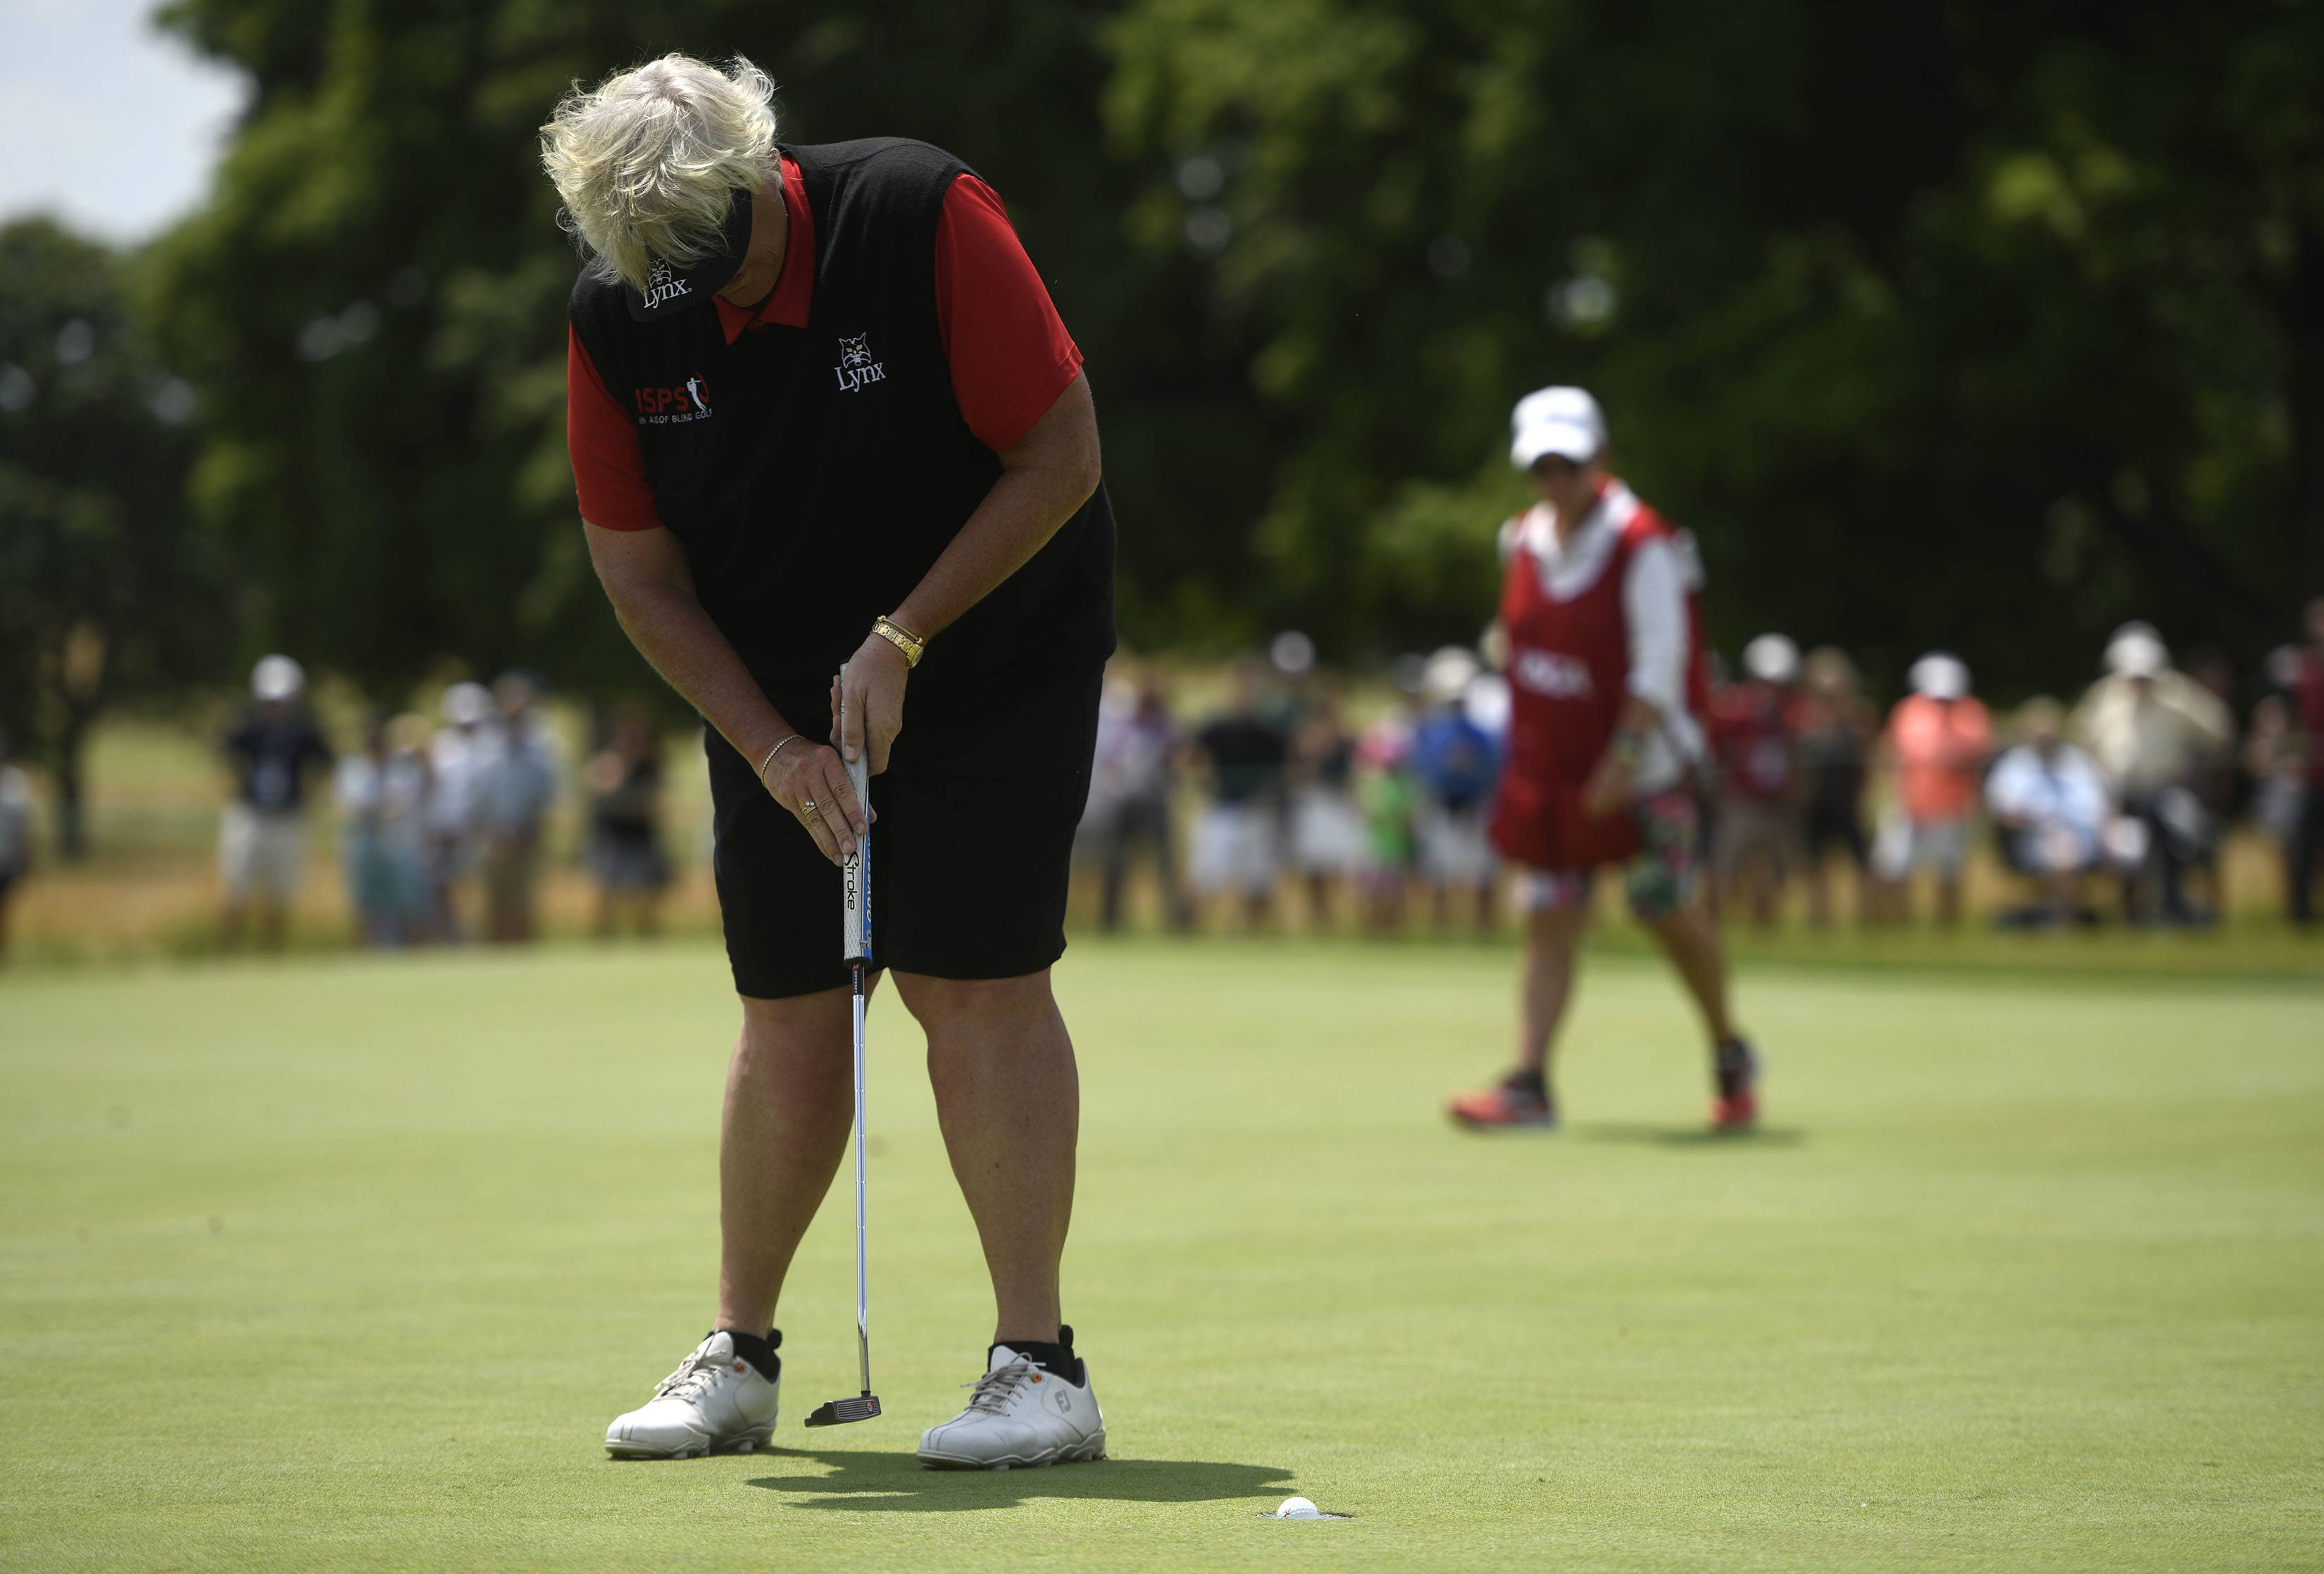 Golfers happy with turnout at Senior Open, look forward to next year